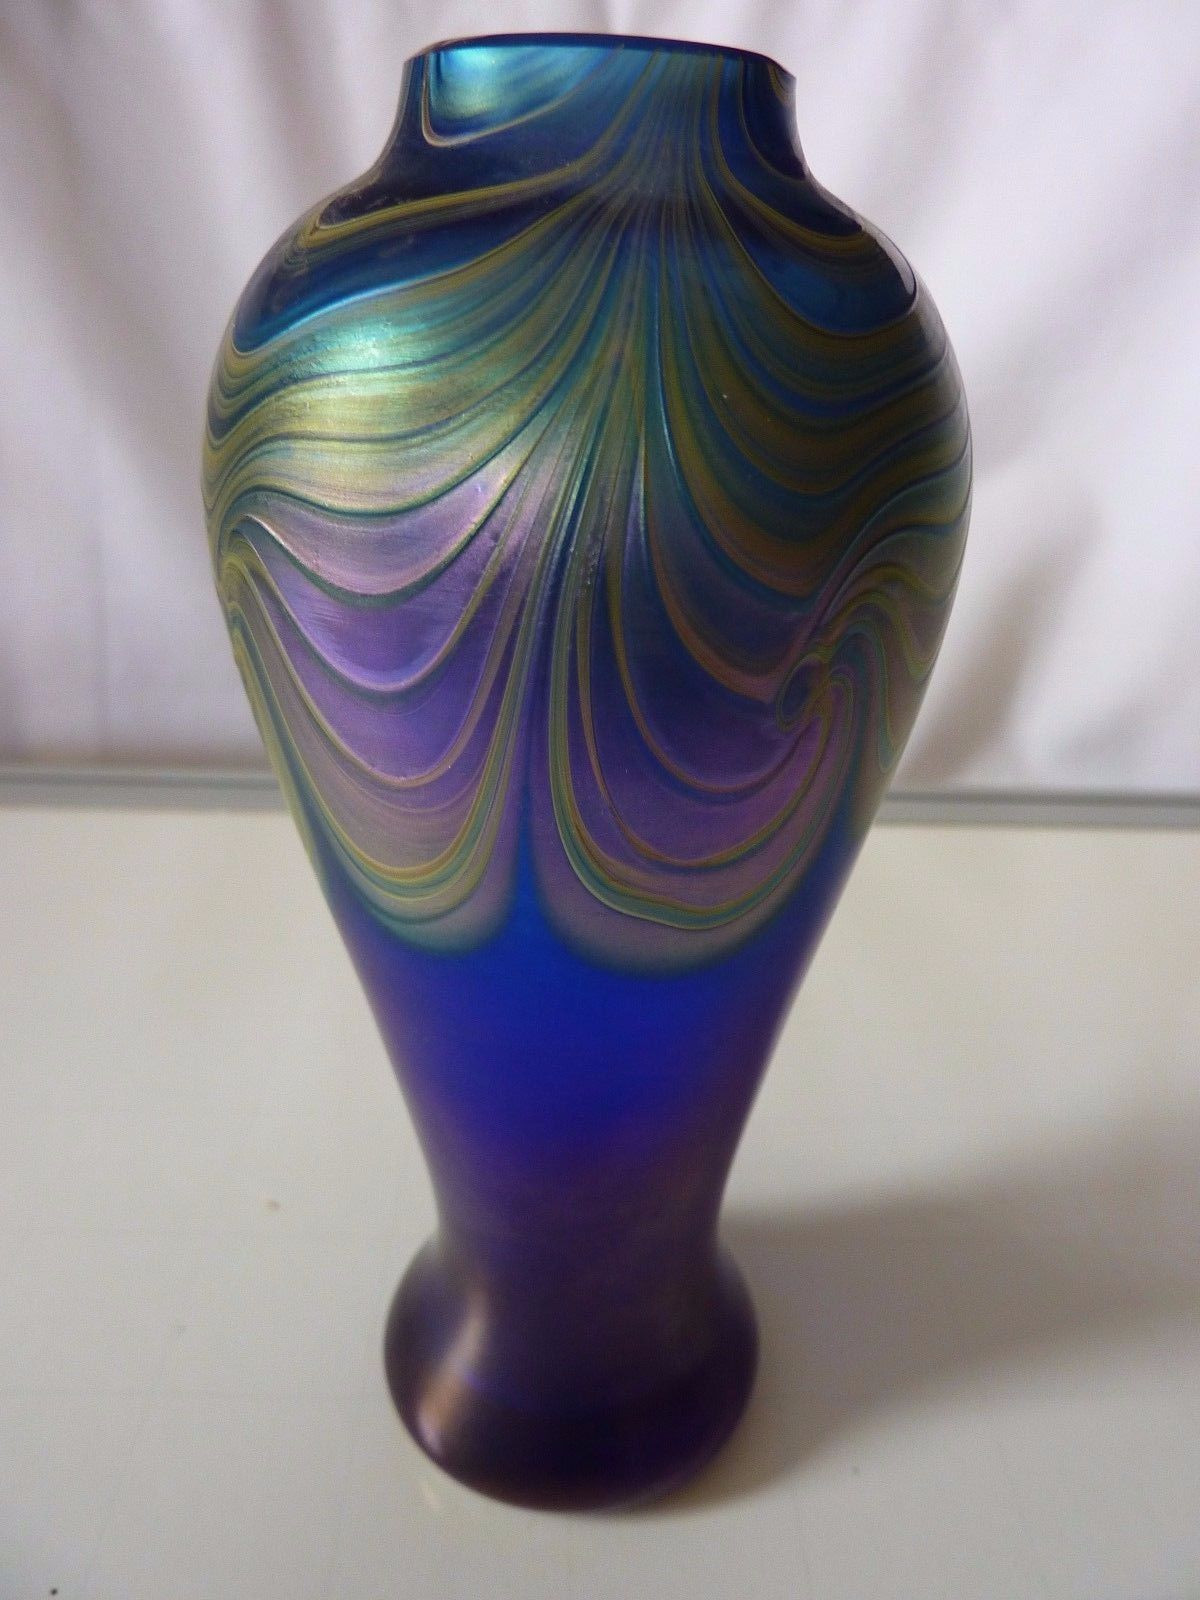 lundberg art glass vase of lundberg studios blue pulled feather art glass vase w star design 7 pertaining to lundberg studios blue pulled feather art glass vase w star design 7 stars in her eyes pinterest star designs feathers and glass